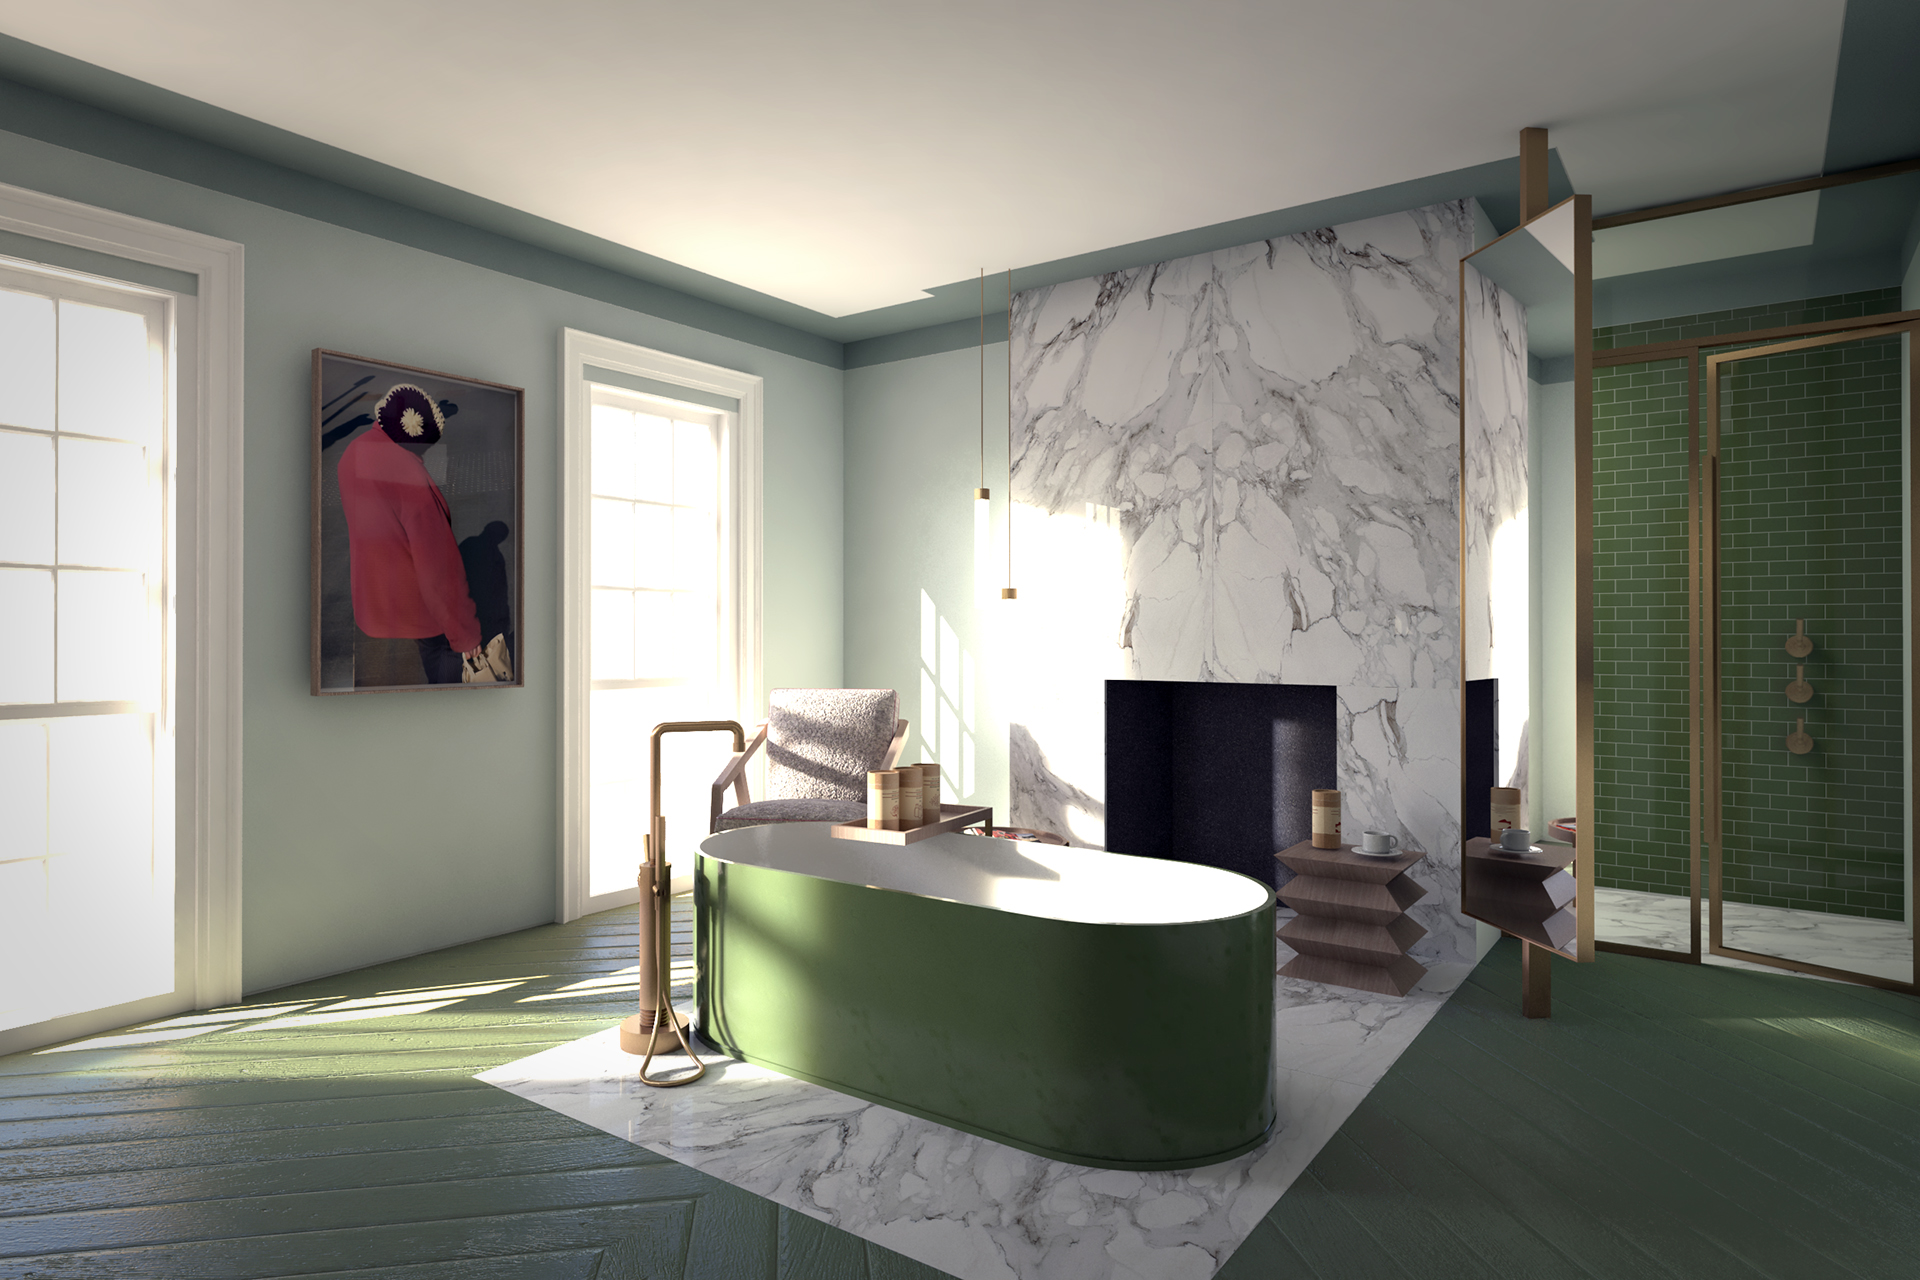 Green glamour: An avocado bathroom in Notting Hill - The ...